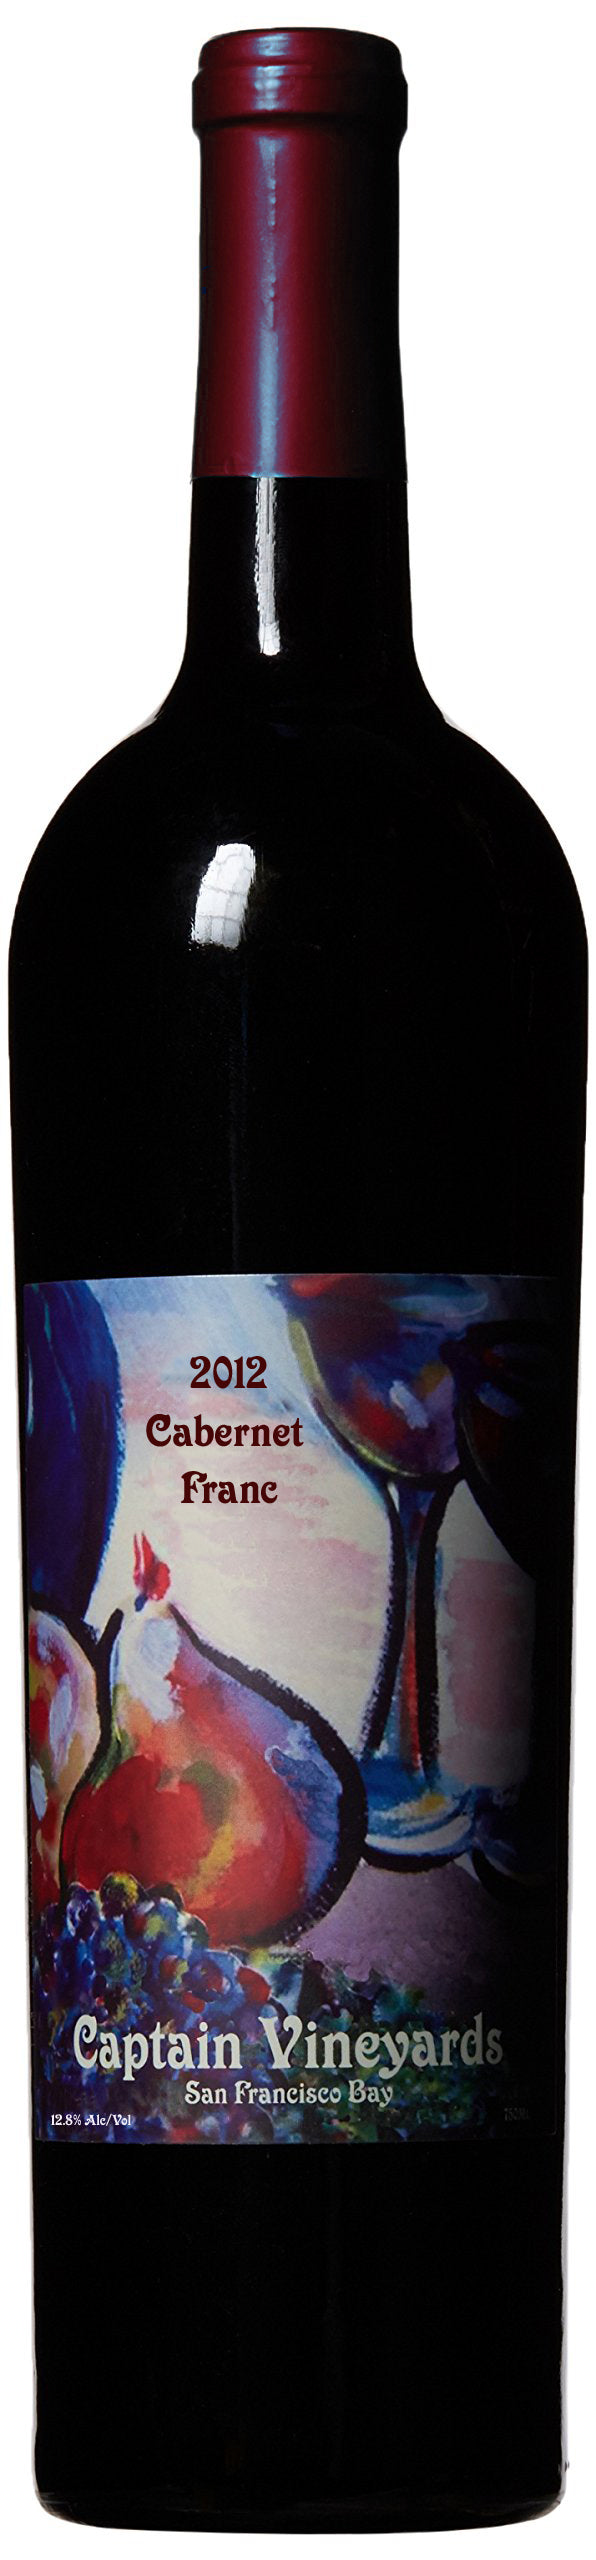 Cabernet Franc 2012 (Sold Out)